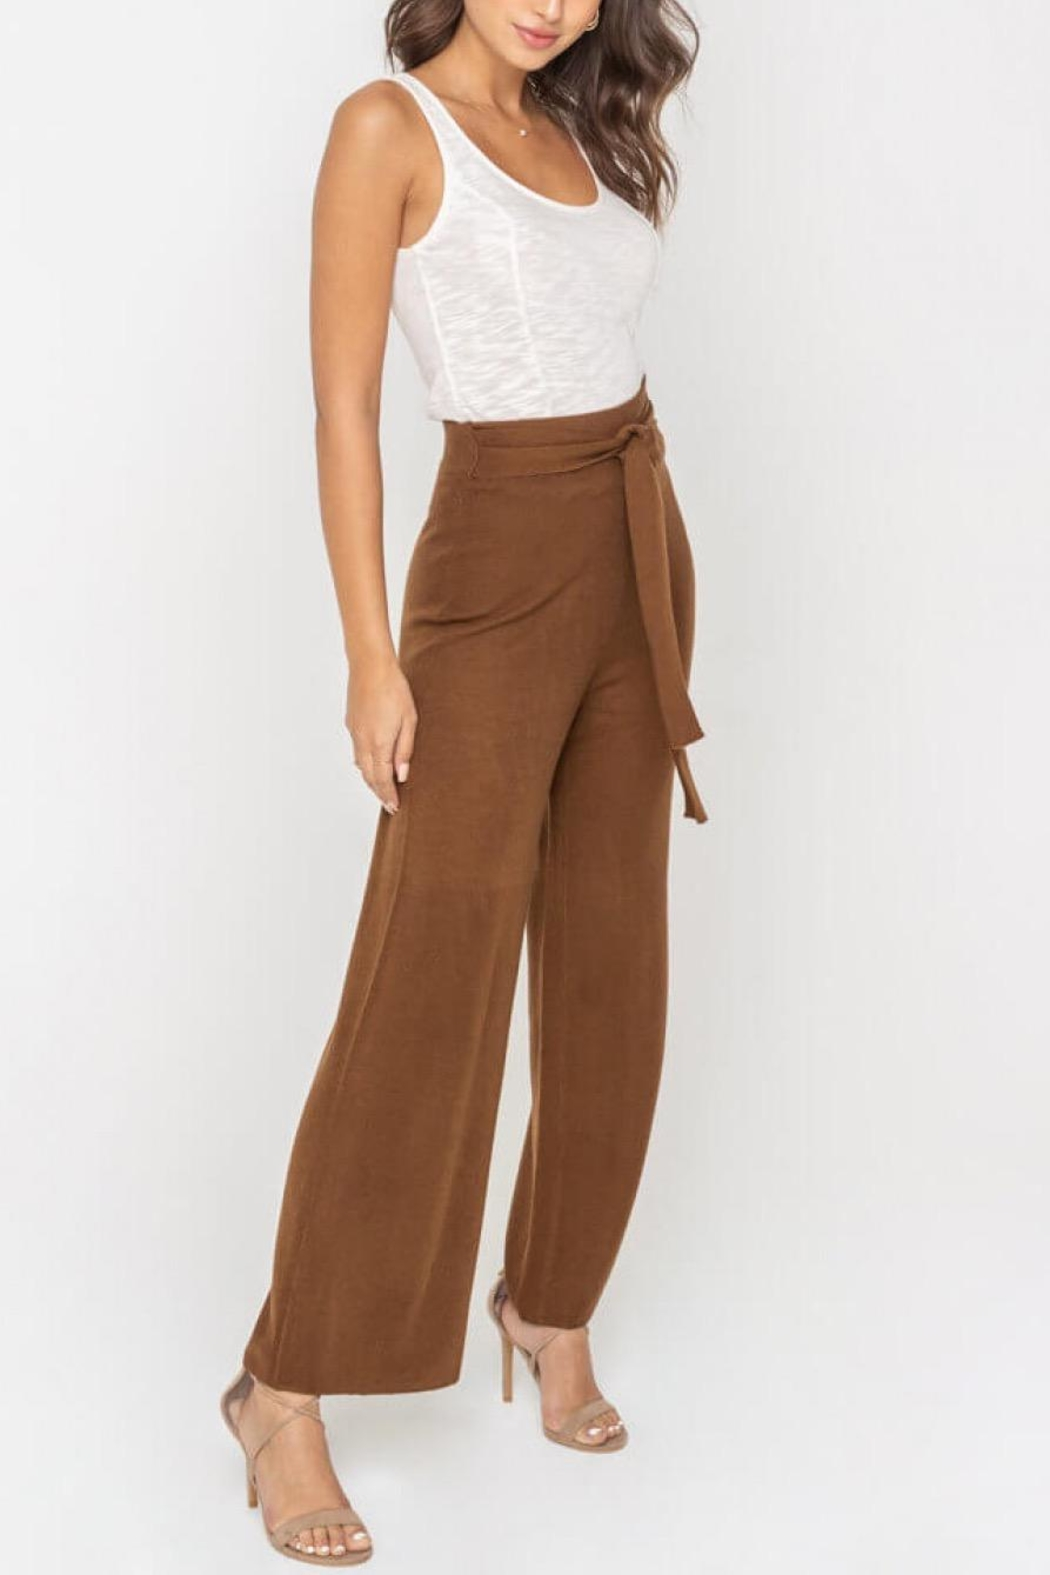 Sugarlips Waist-Tie Knit Pants - Front Full Image